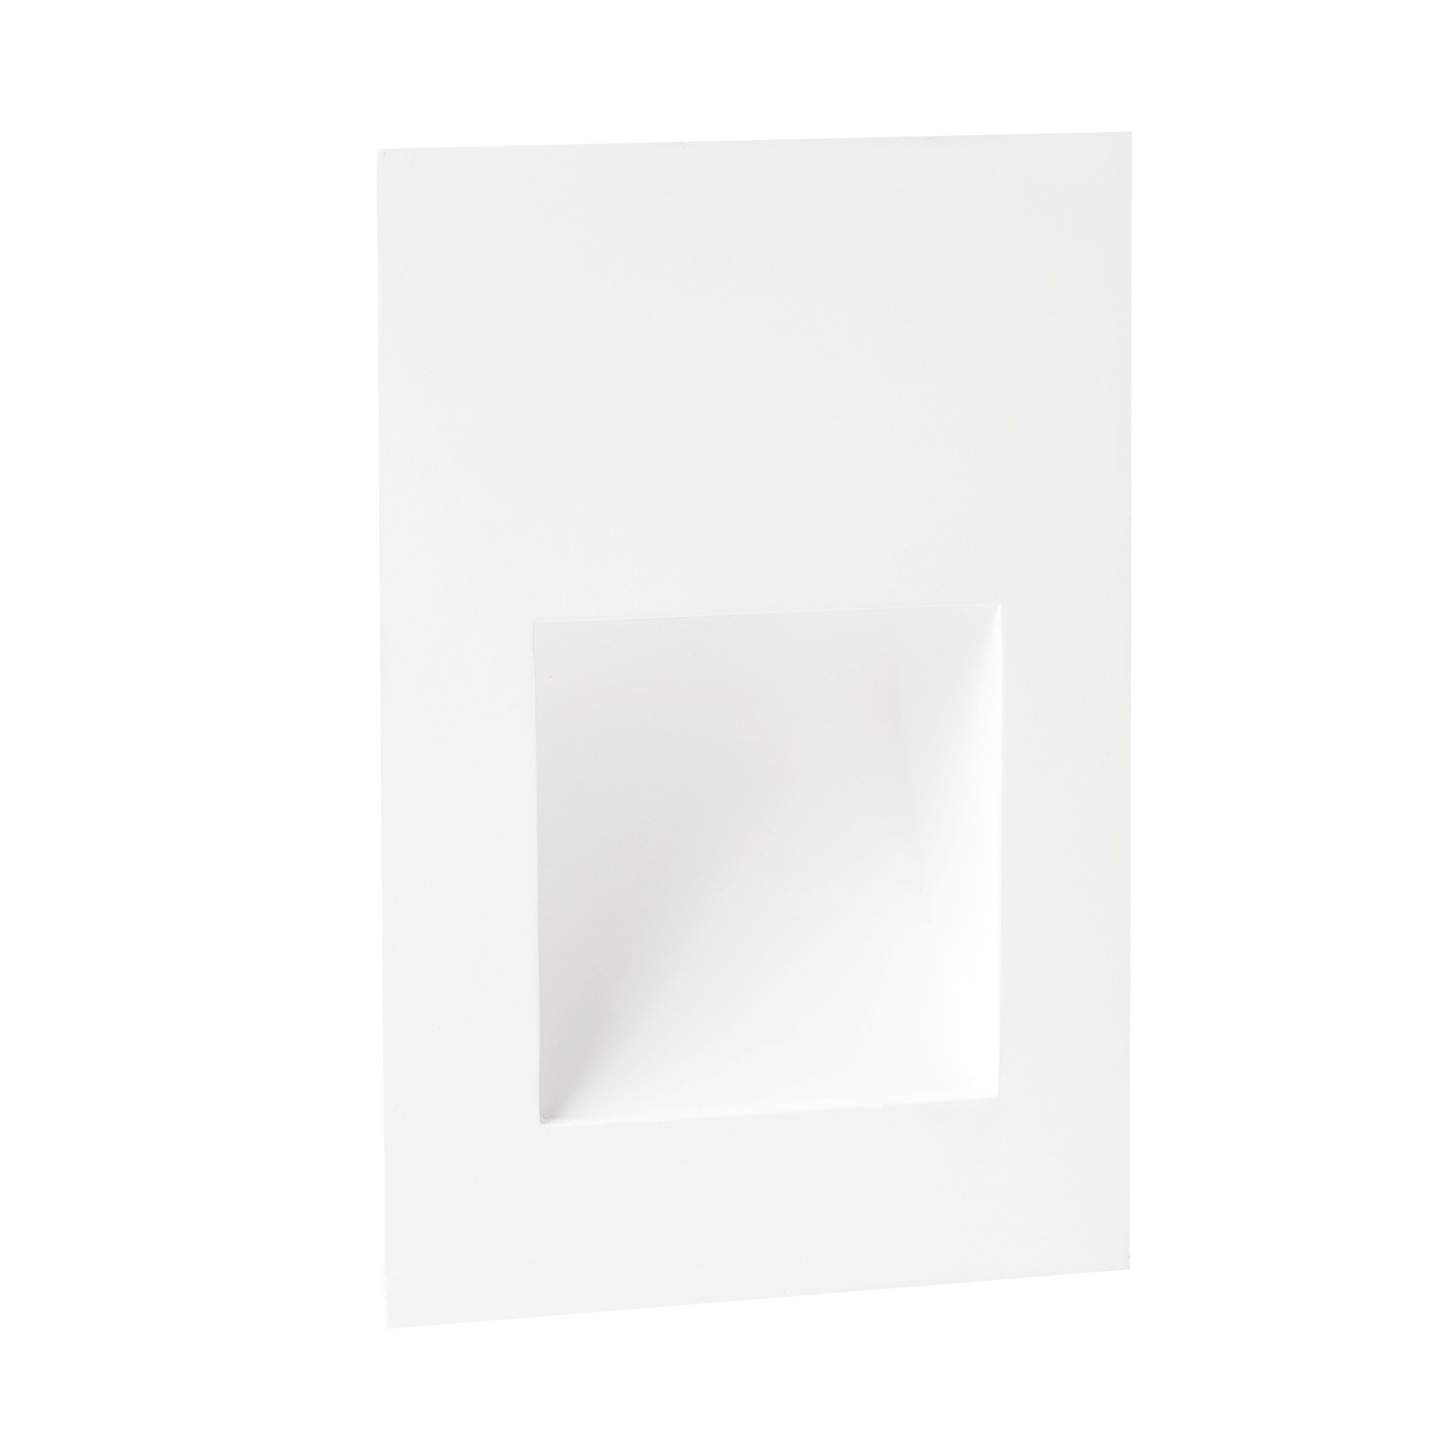 Plas 3 Recessed plaster LED 1x1w 3000ºK 64,80Lm white